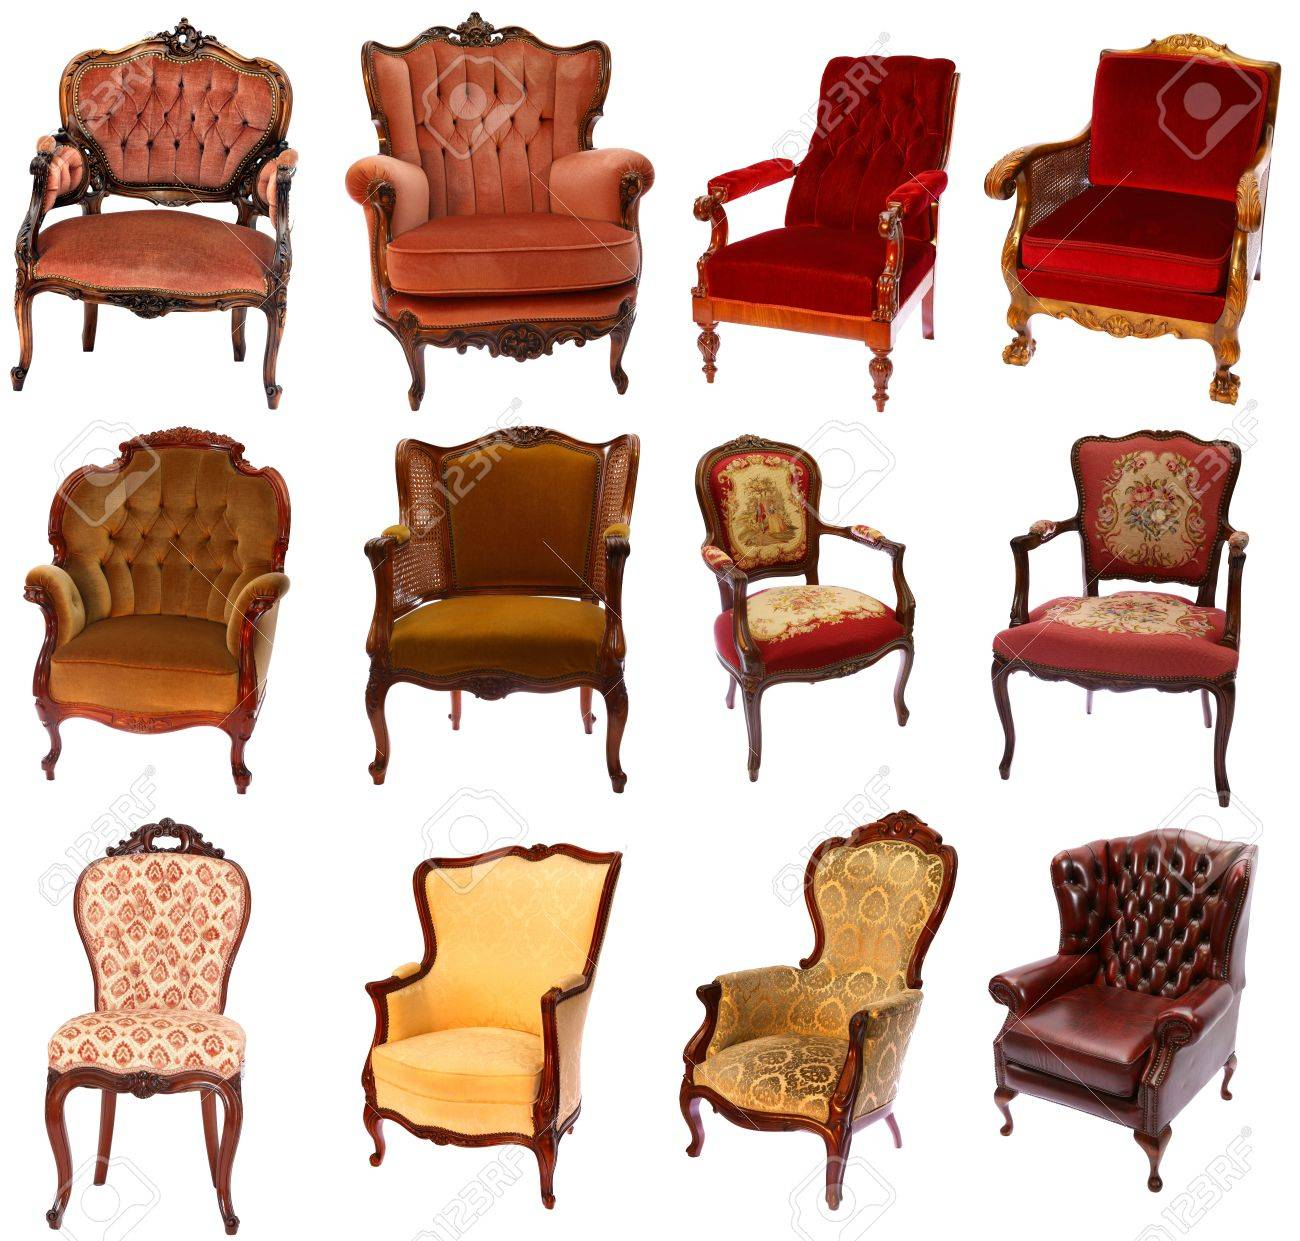 Styles Of Chairs Collection Of 12 Different Antique Style Chairs Isolated On White